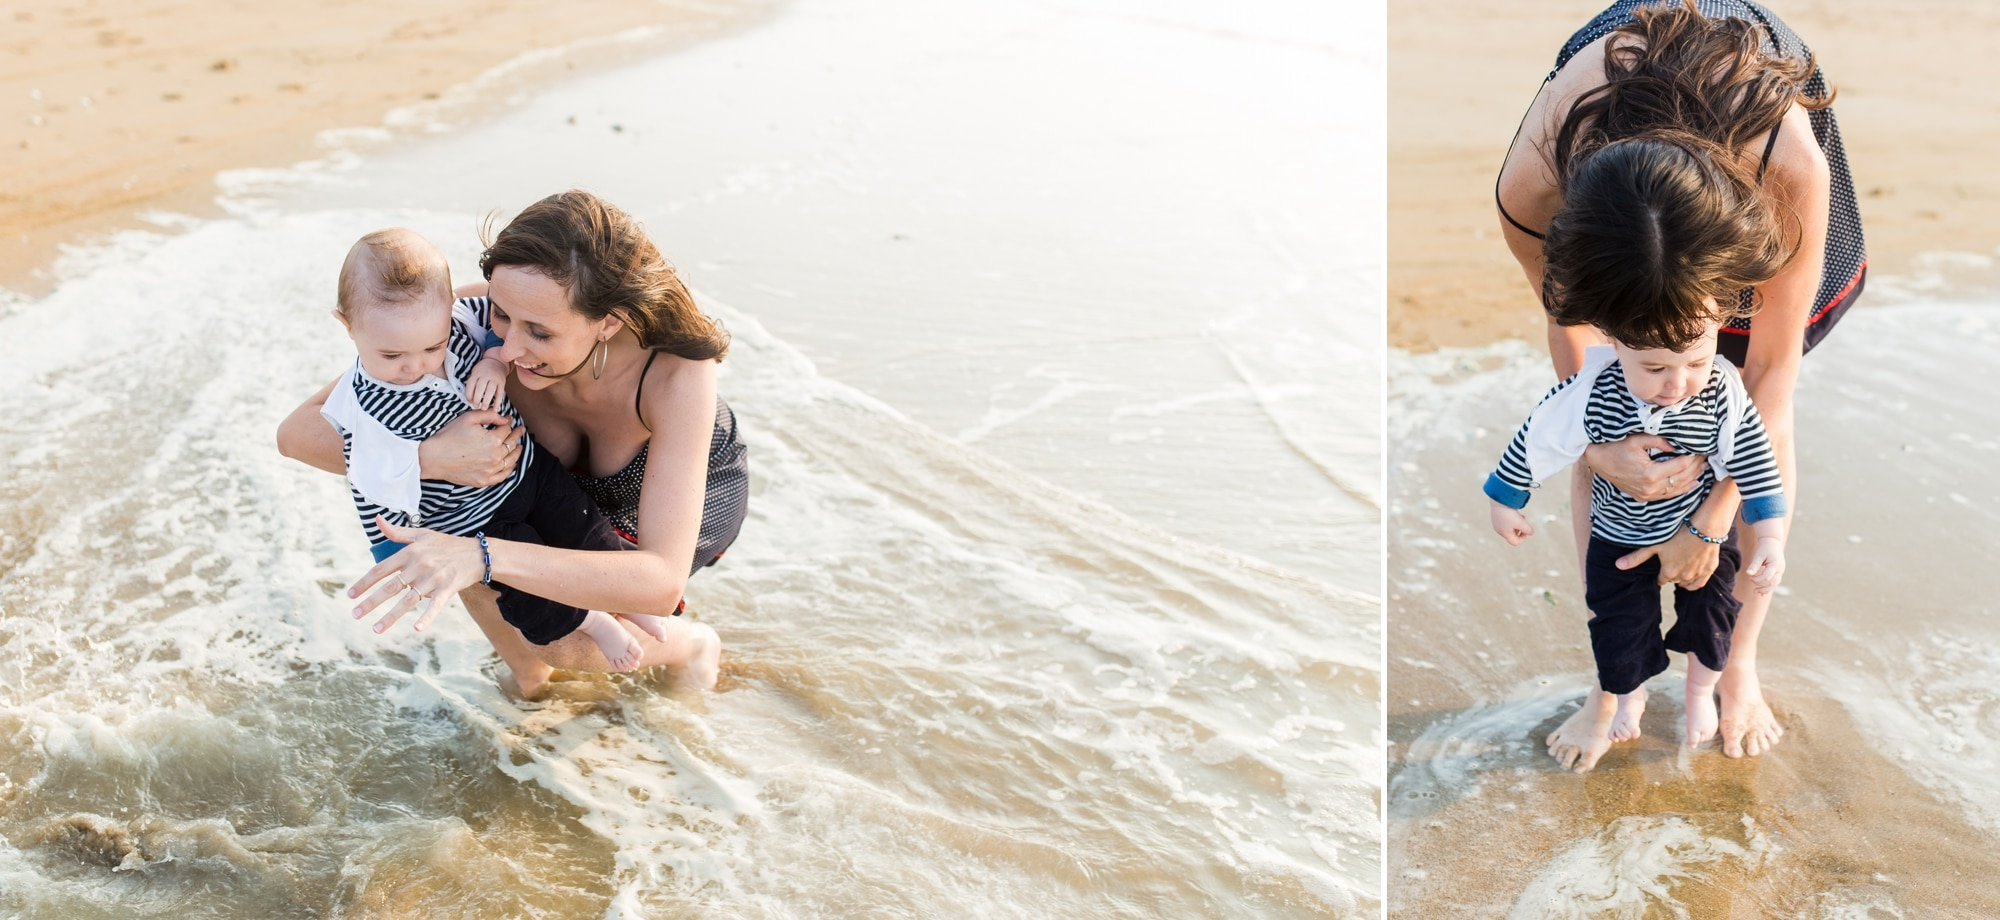 séance famille cabourg basse normandie photographe shooting lifestyle-15